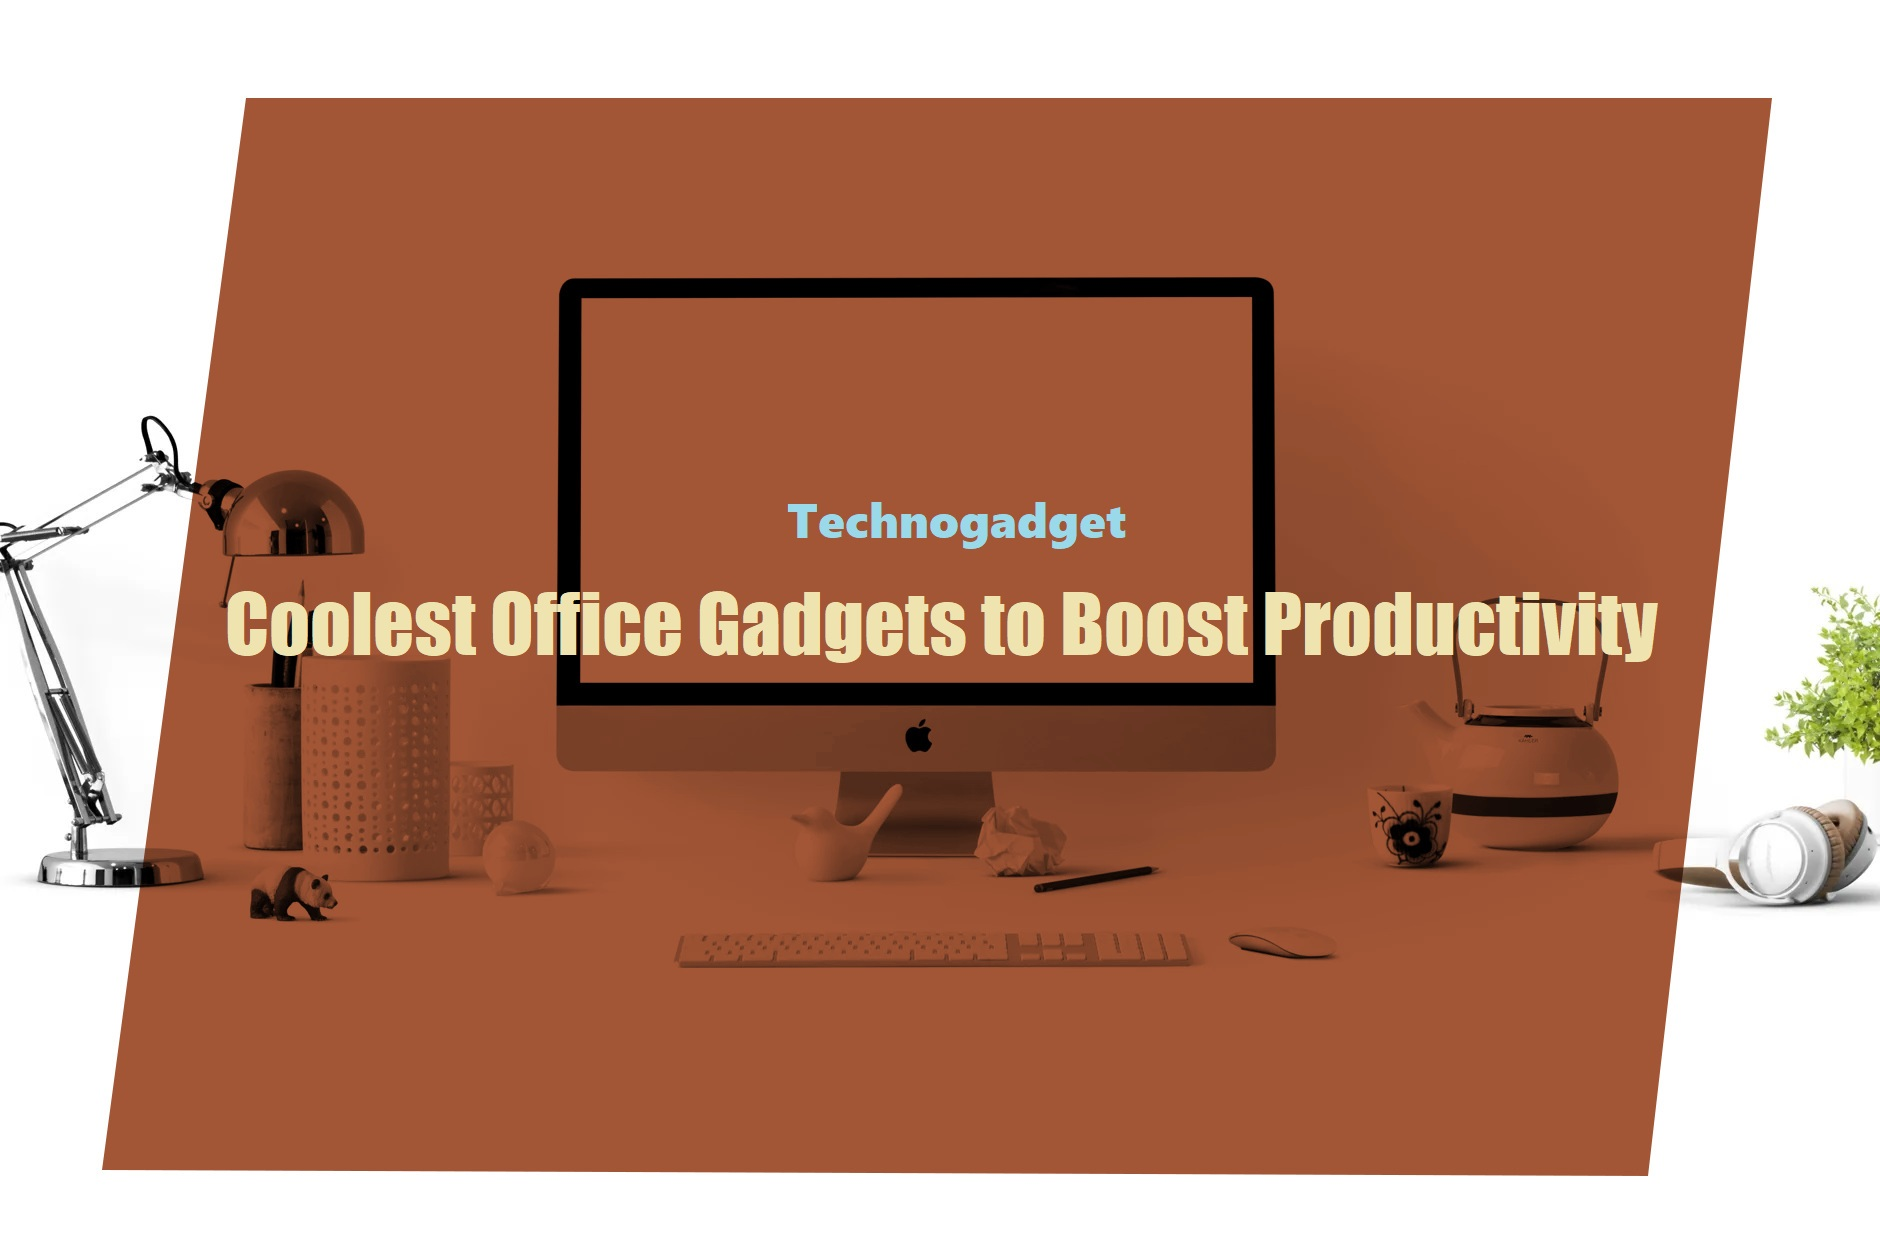 Coolest Office Gadgets to Boost Productivity